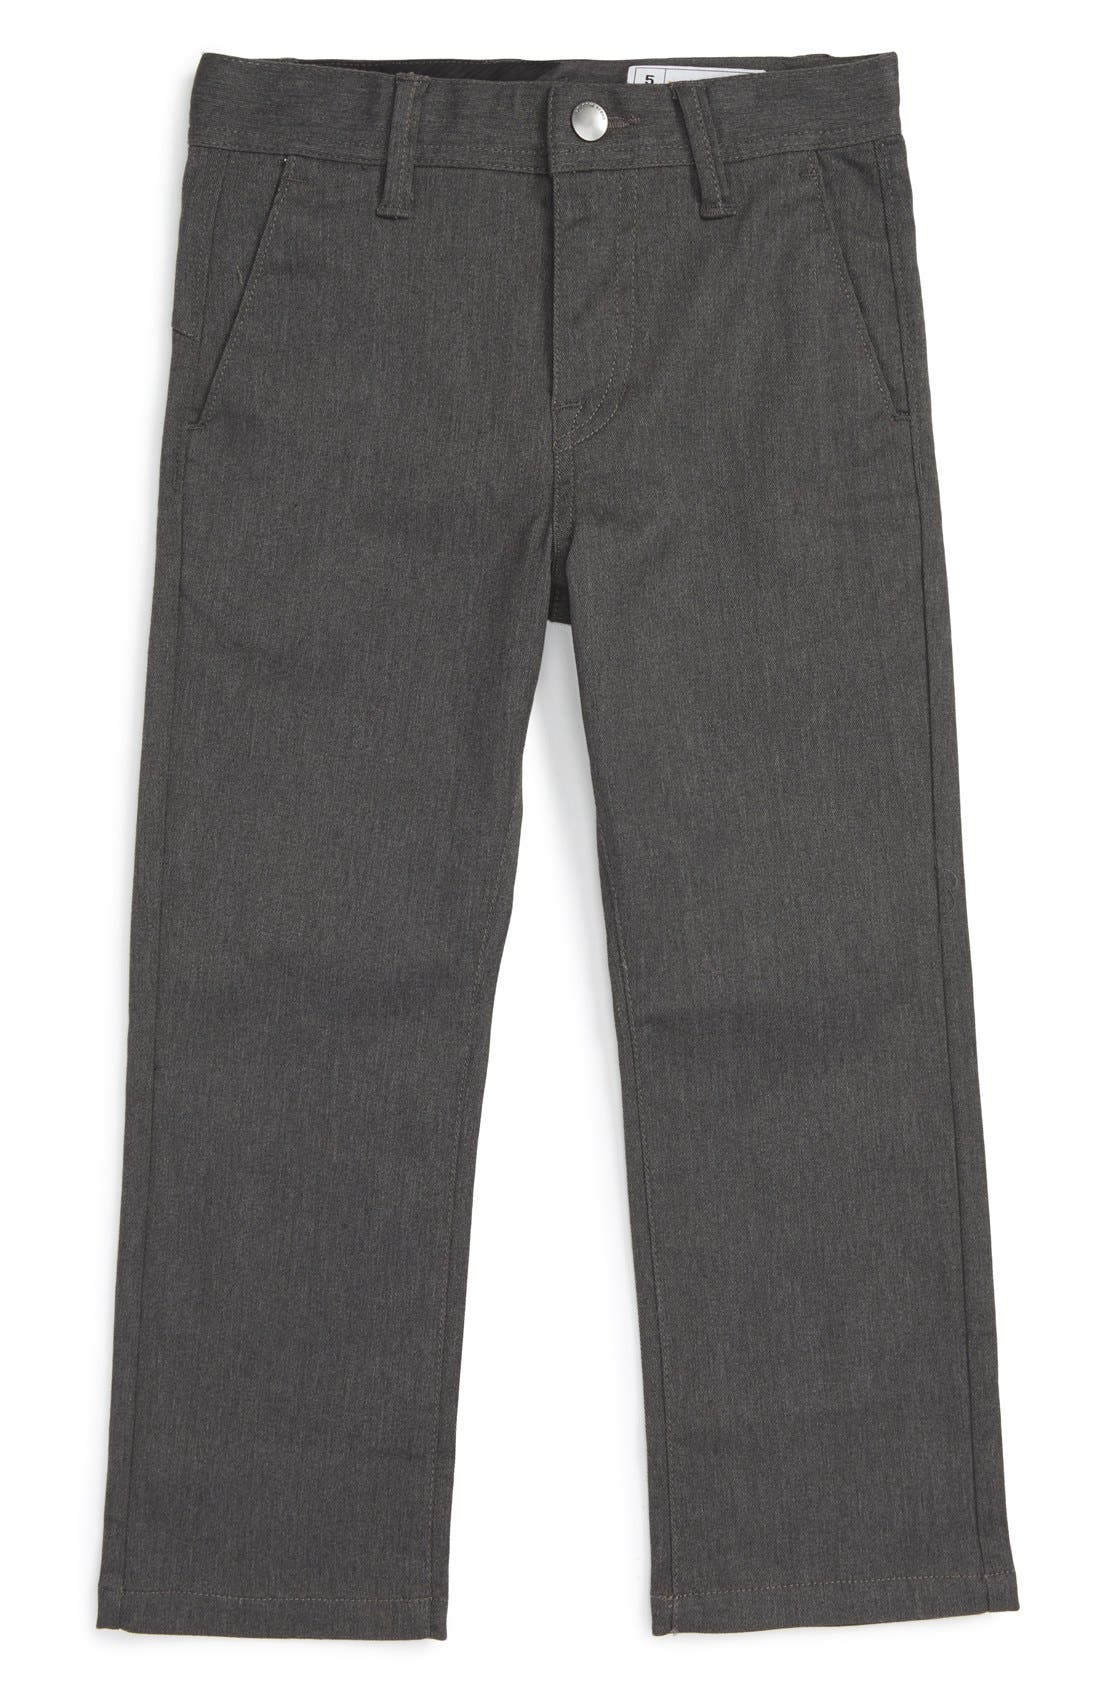 Modern Stretch Chinos,                             Main thumbnail 1, color,                             Charcoal Heather